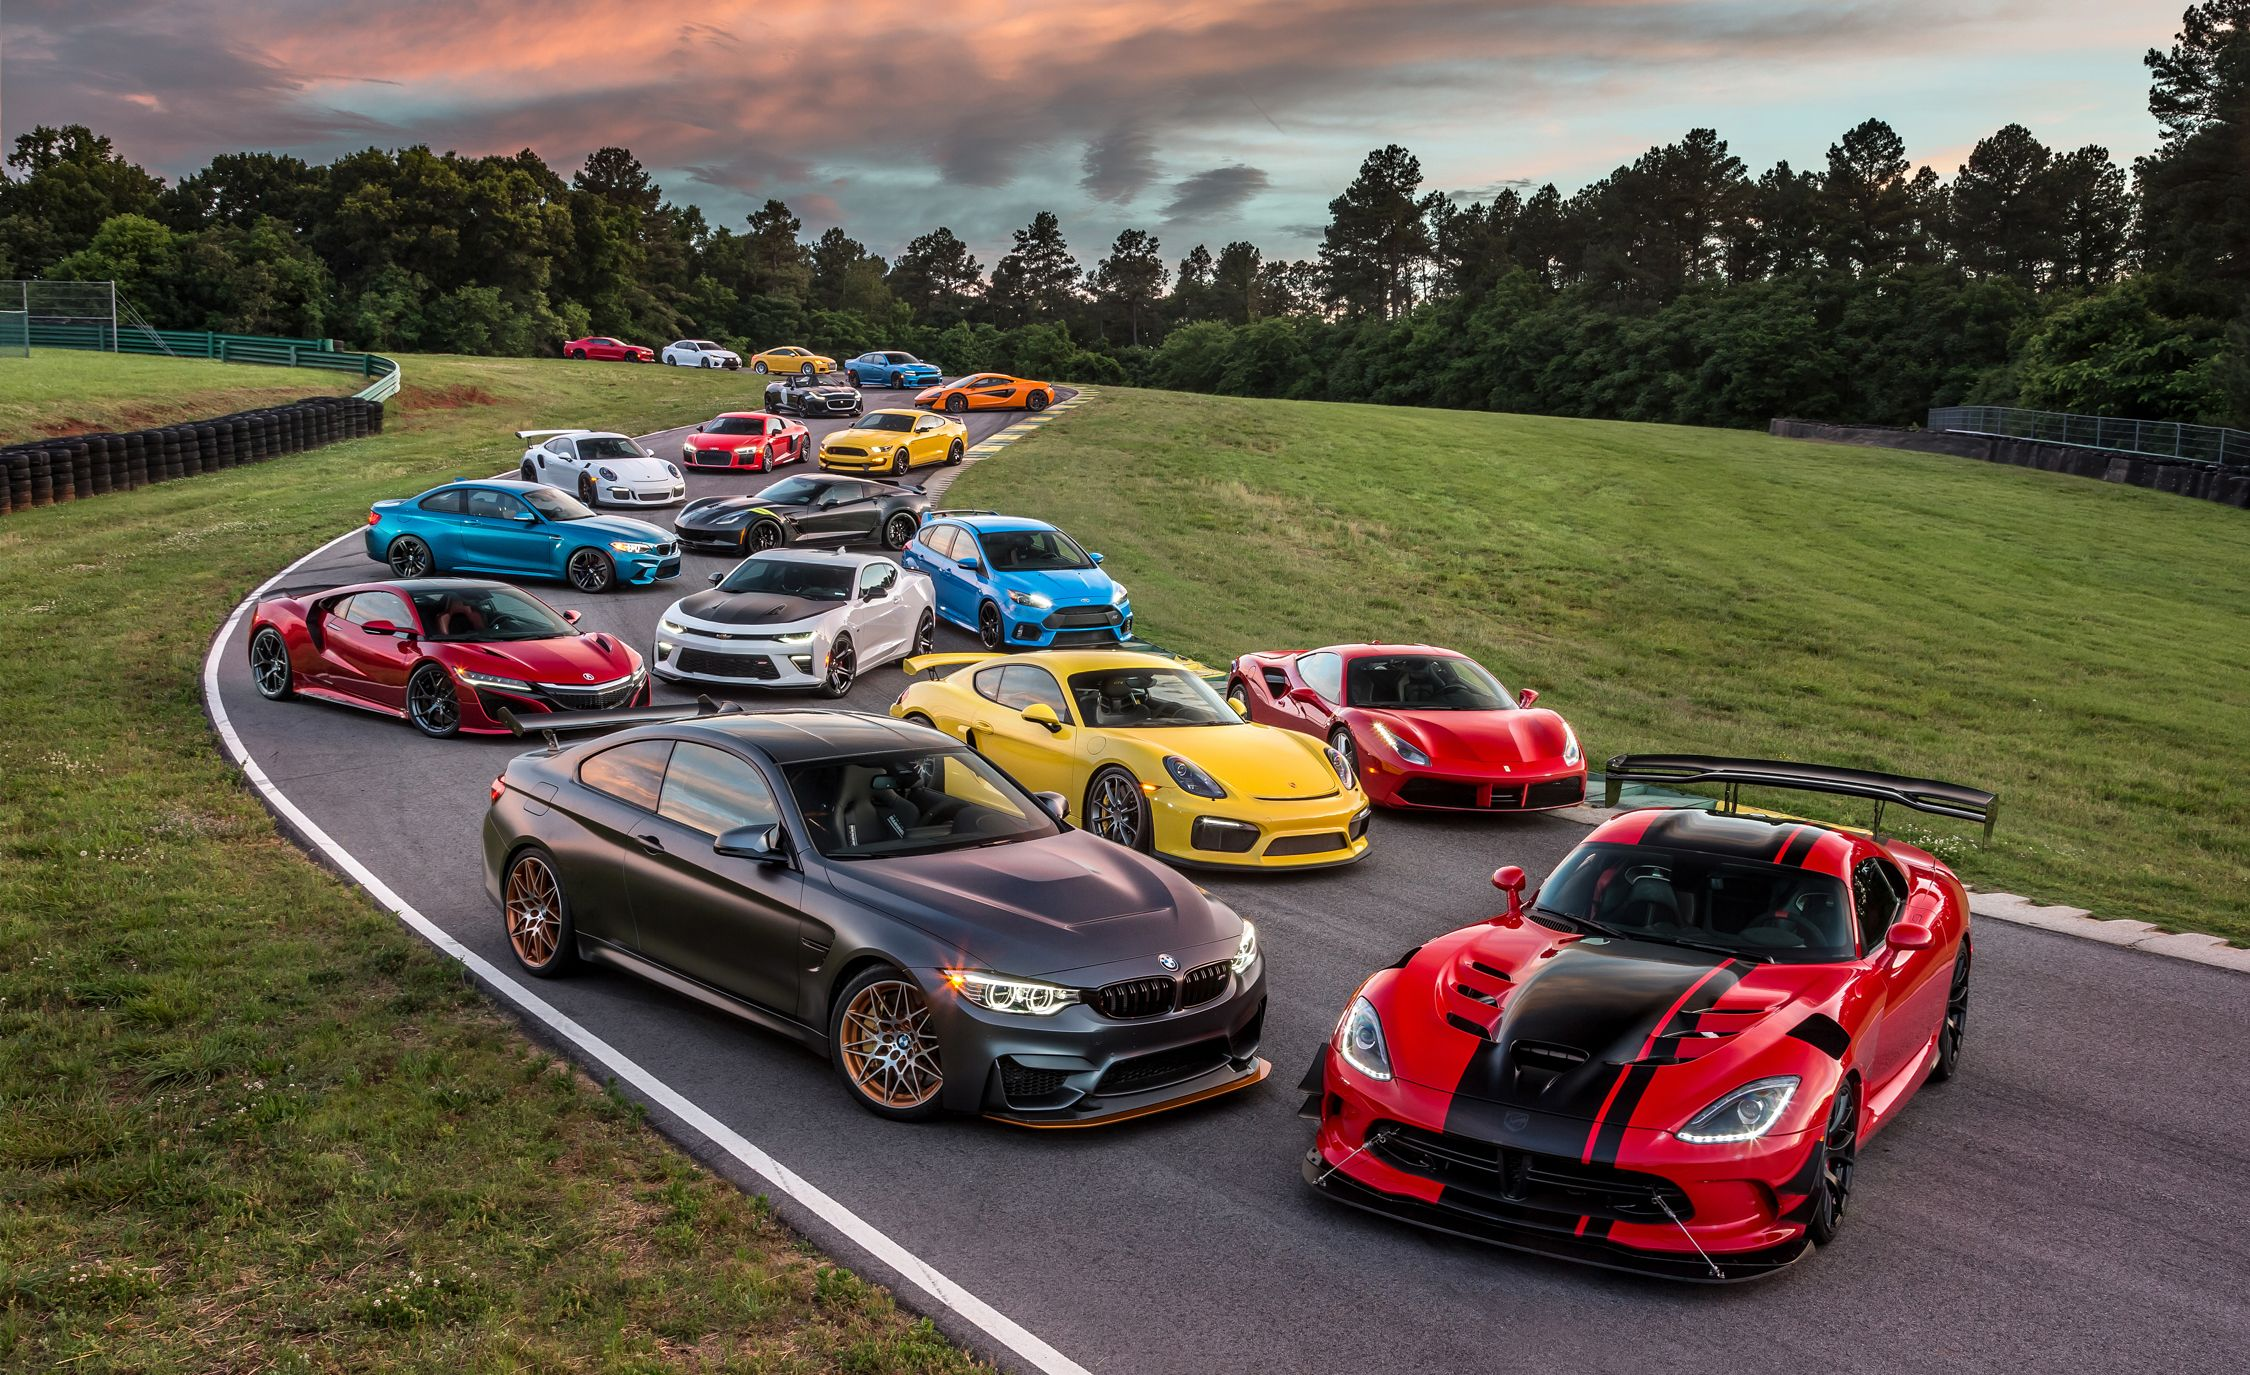 Lightning lap 2016 the year s fastest street cars on america s toughest track